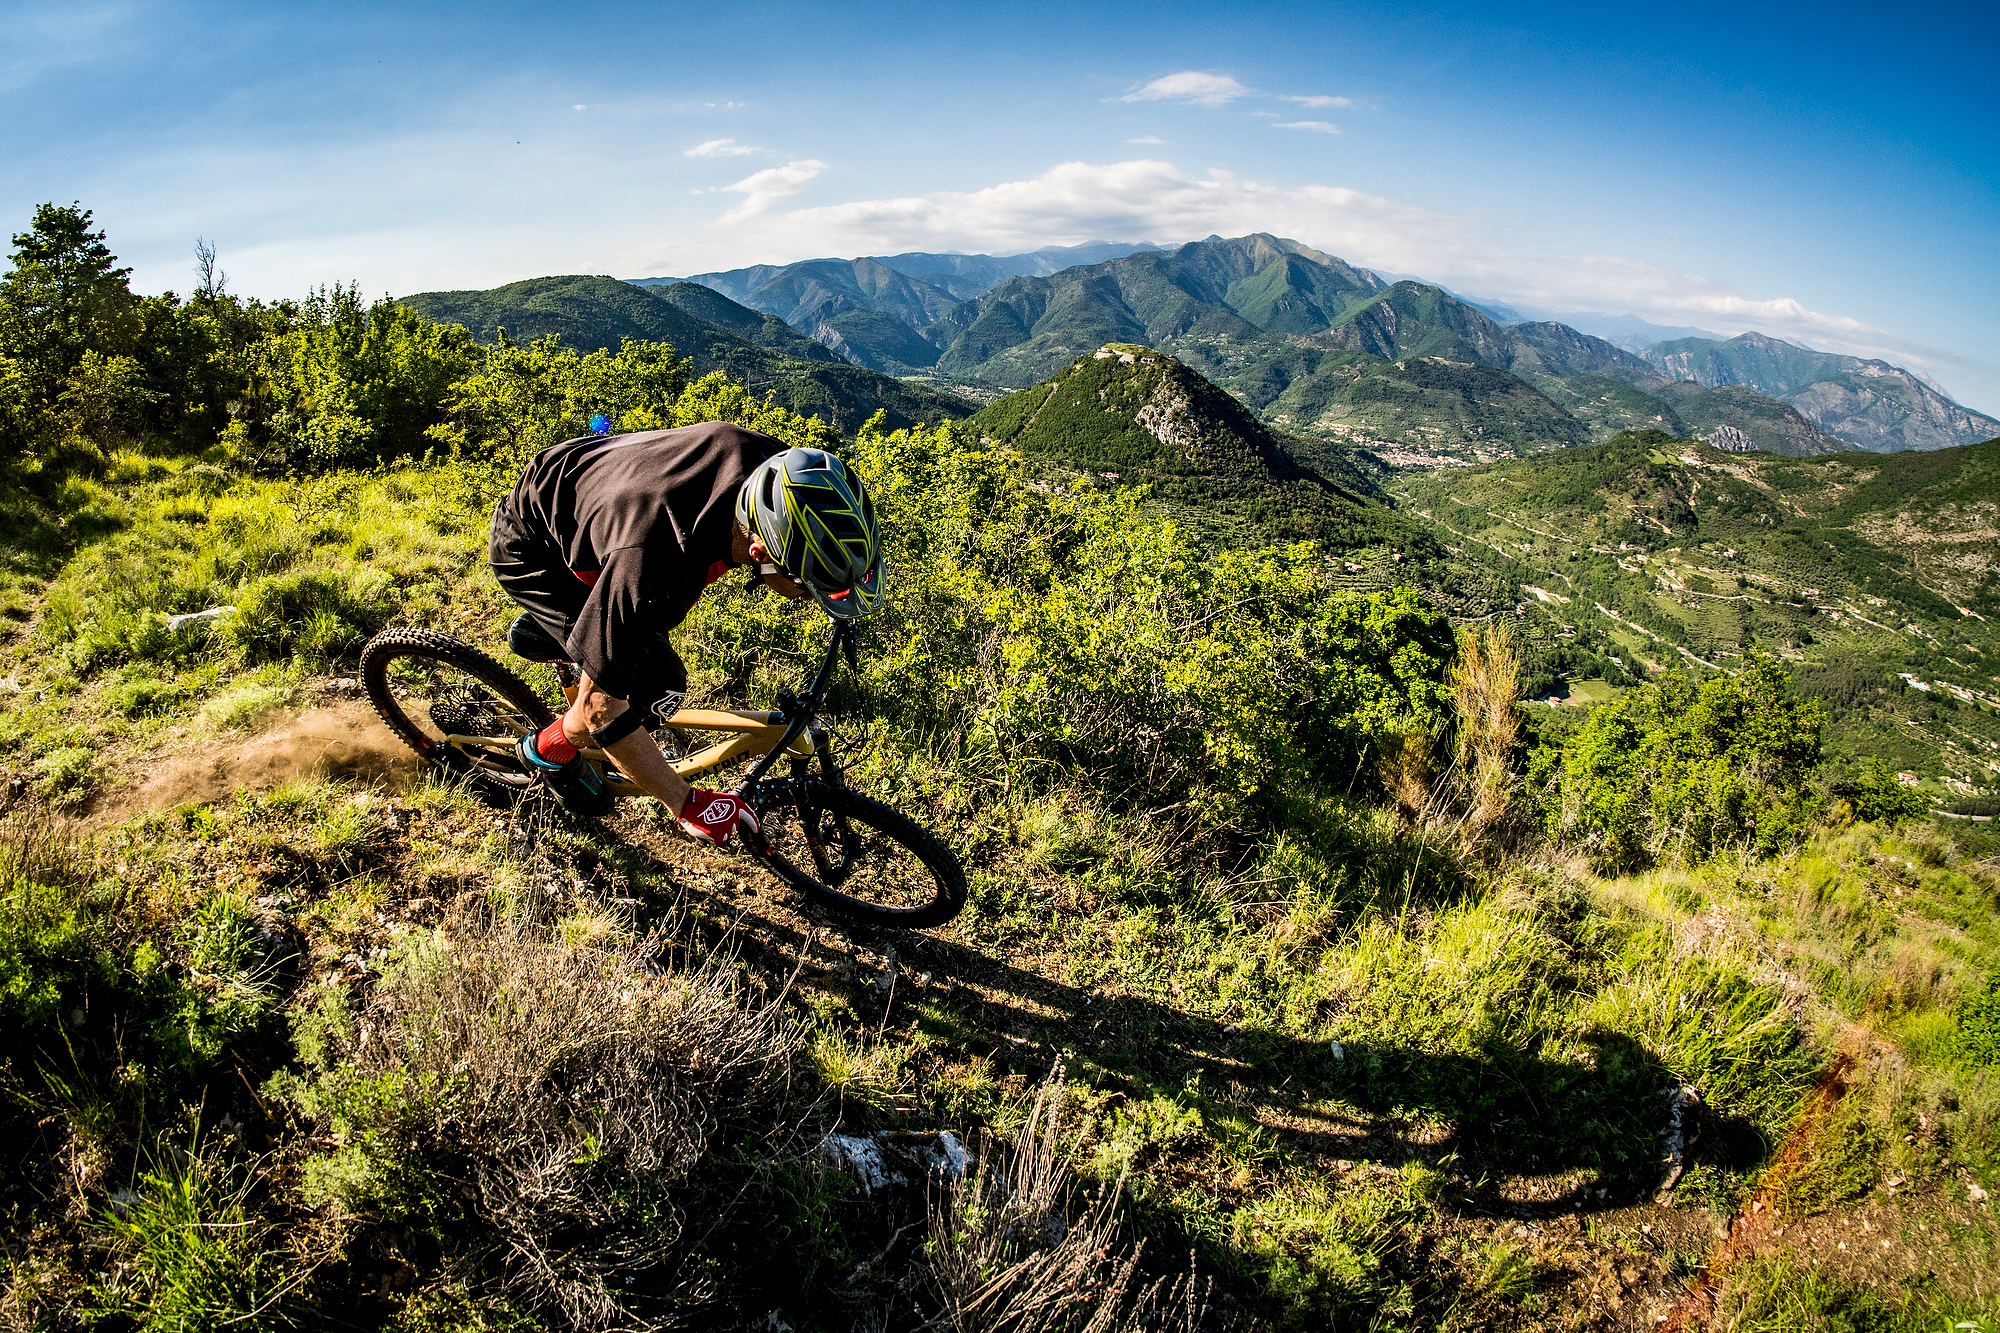 Occasionally I had to stand up and pedal during the hour long descents into the valley floors.              photo: Sven Martin